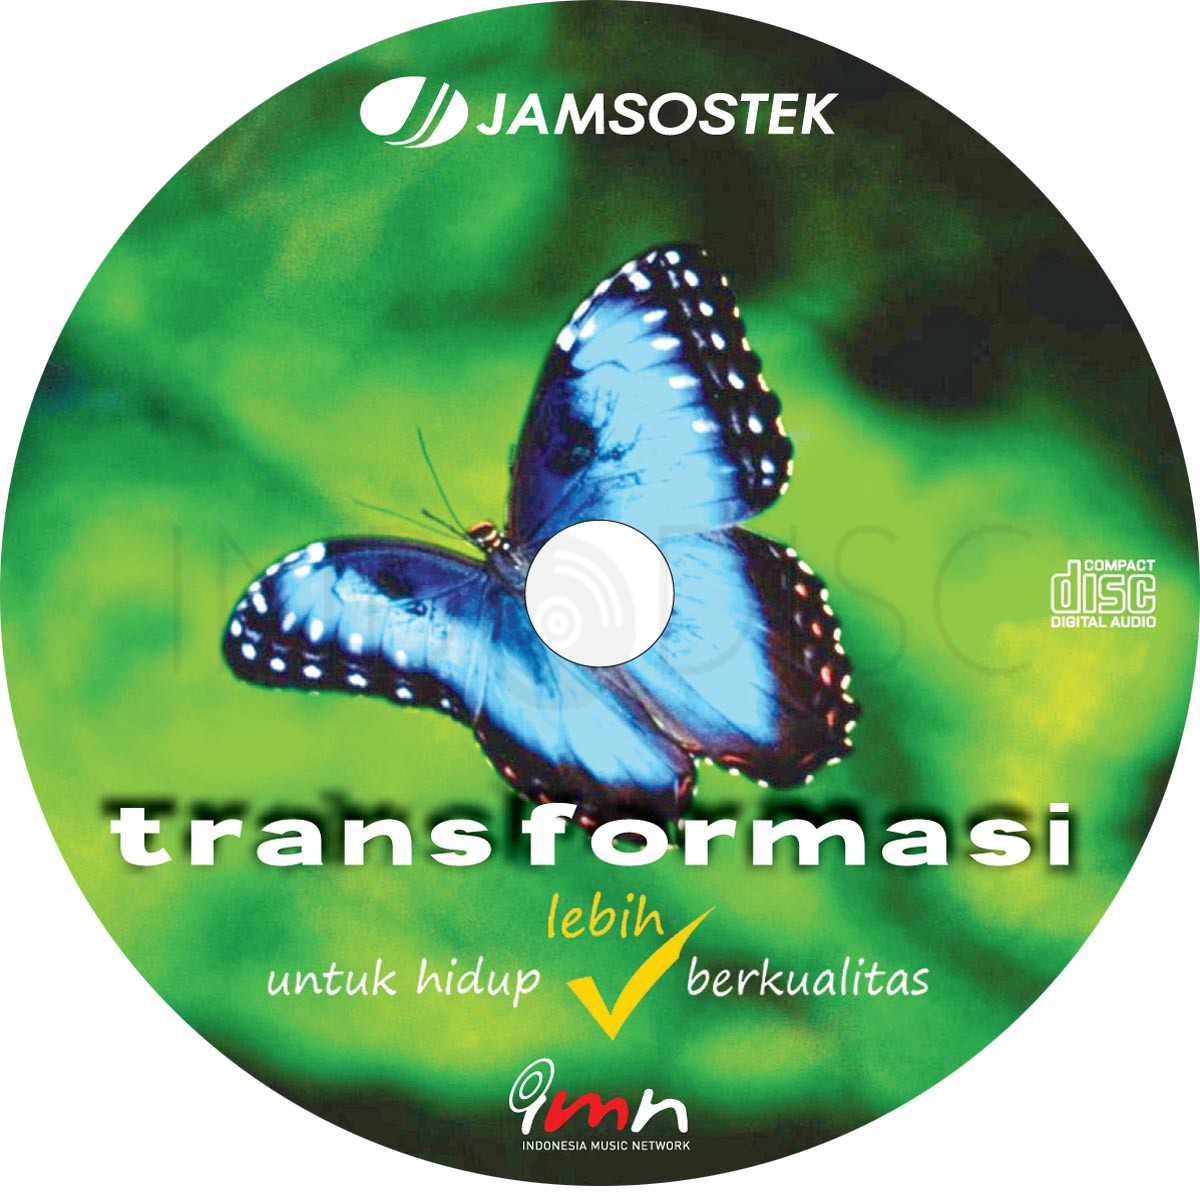 CD Album Jamsostek,revisi.indd